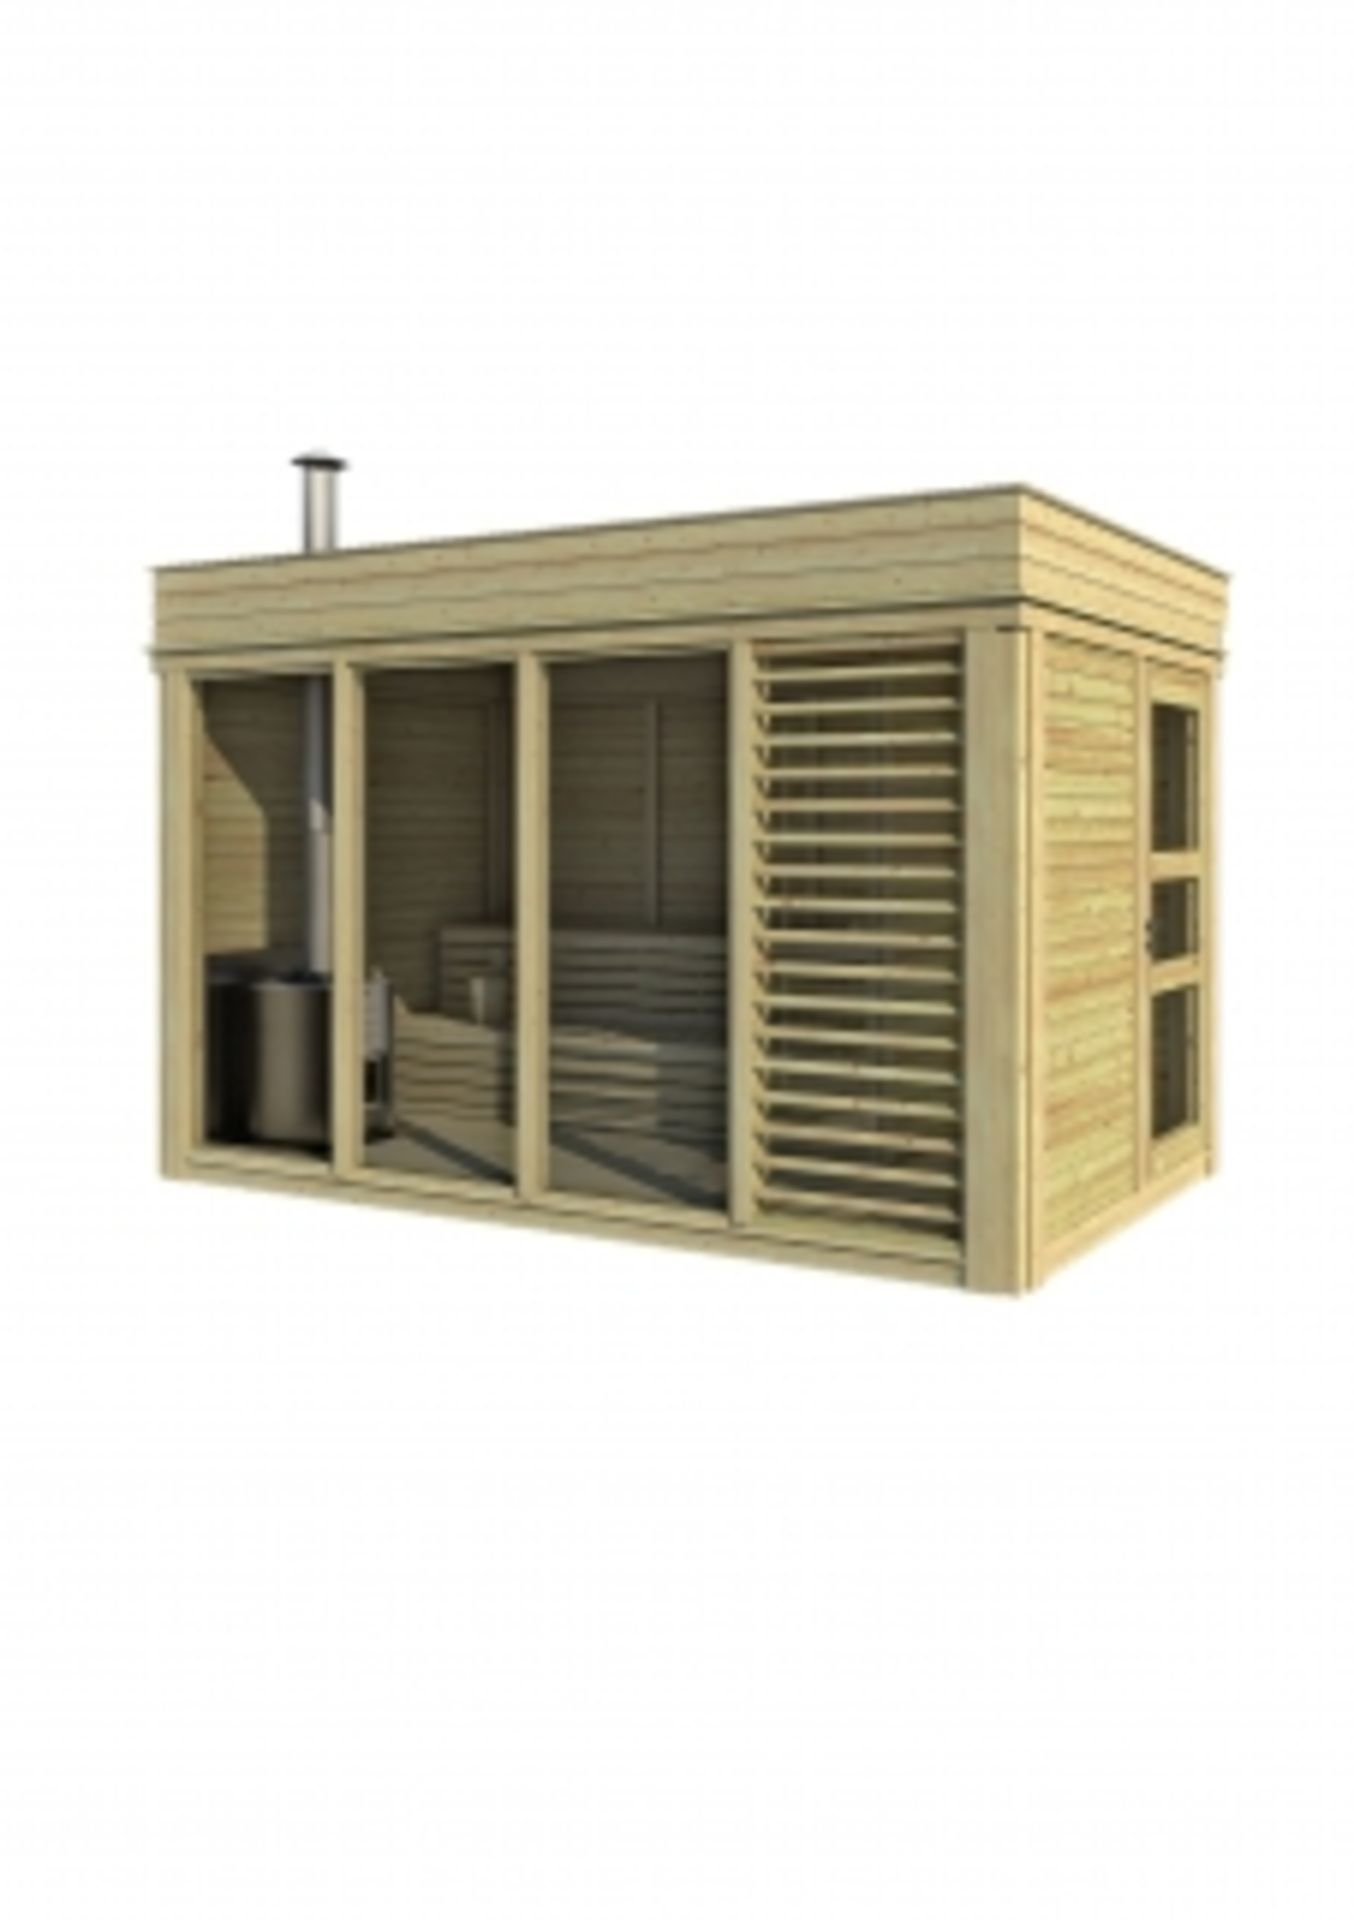 Lot 19013 - + VAT Brand New 2 x 4m Sauna Cube With Changing Room - Made From Spruce Wood - Roof Covered With